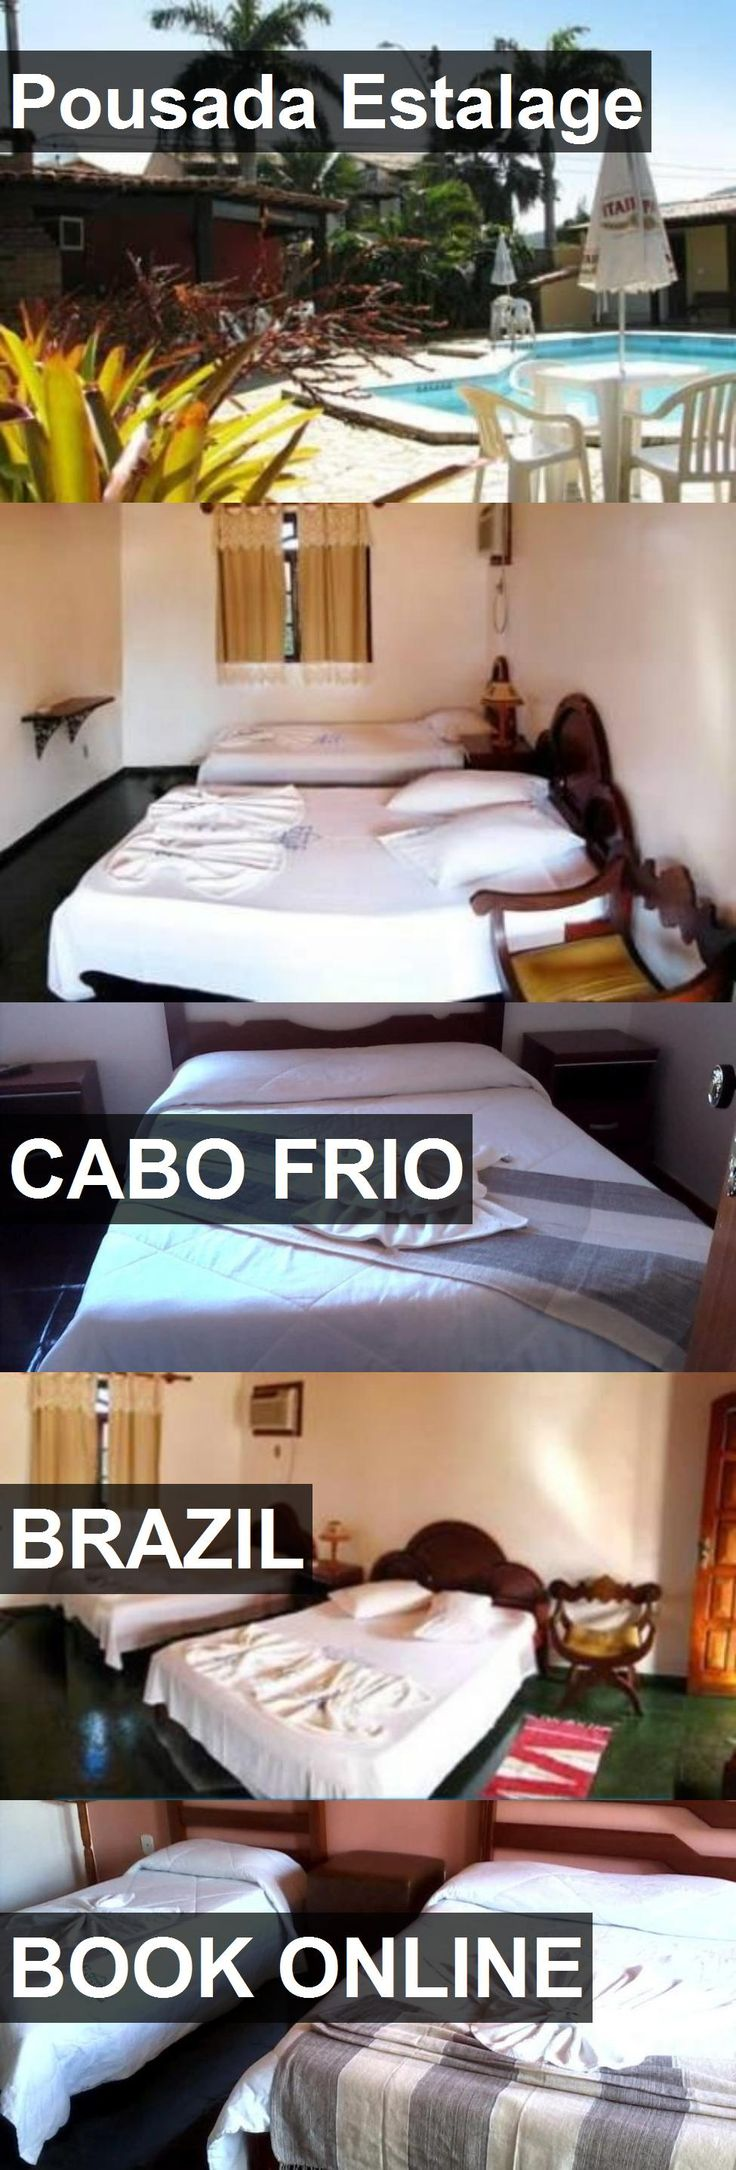 Hotel Pousada Estalage in Cabo Frio, Brazil. For more information, photos, reviews and best prices please follow the link. #Brazil #CaboFrio #travel #vacation #hotel